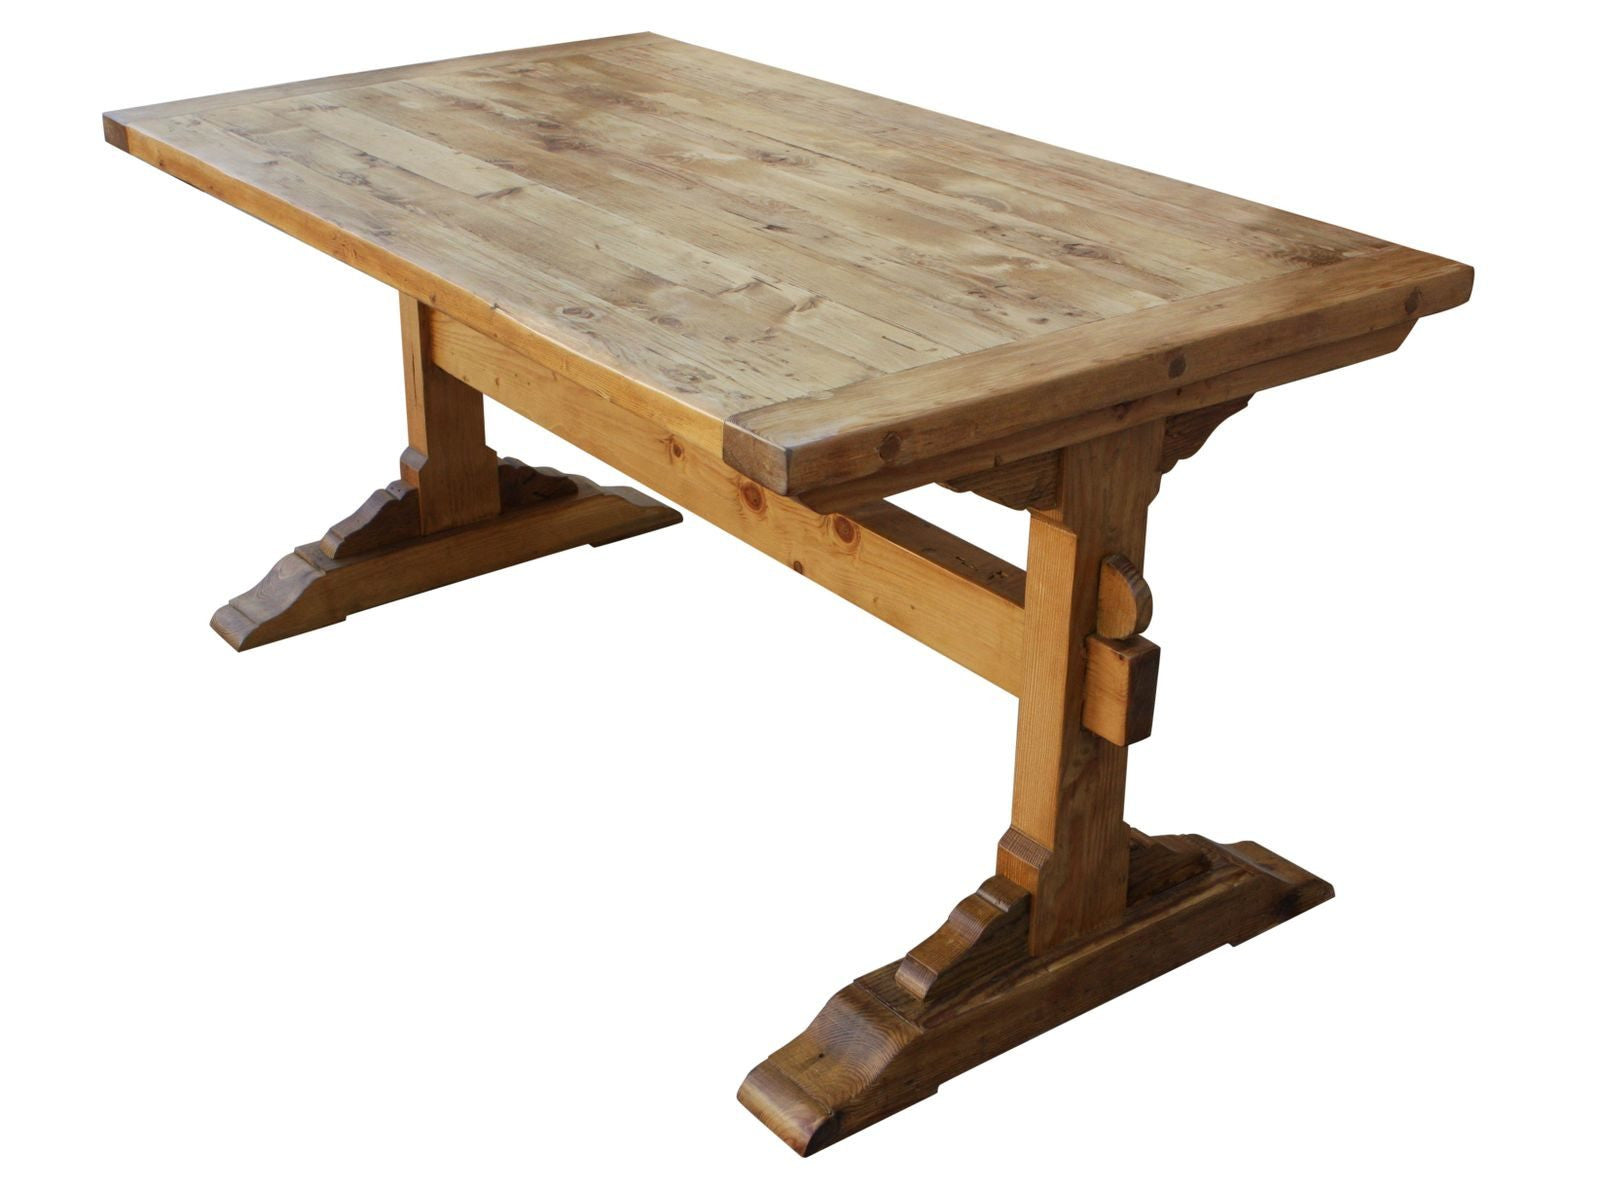 Santa Barbara Dining Trestle Table Built in Reclaimed Lumber-Chunky ...